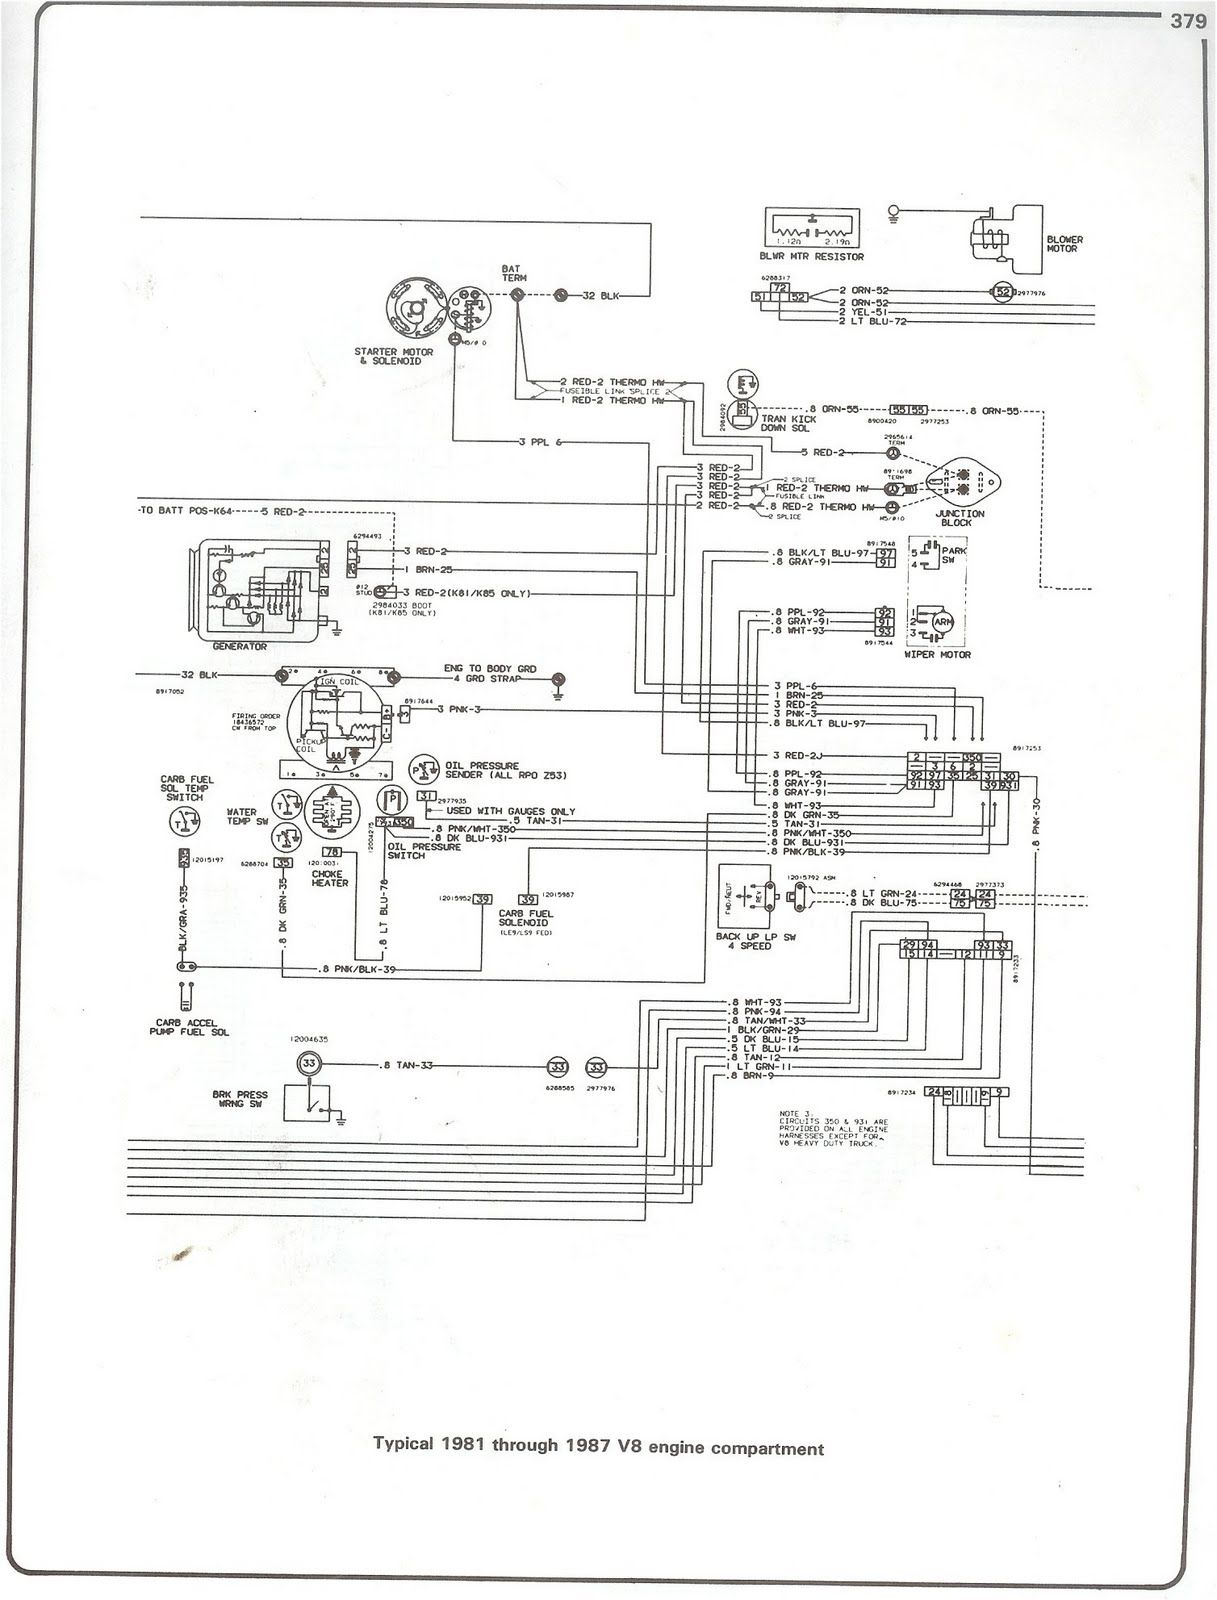 medium resolution of this is engine compartment wiring diagram for 1981 trough 1987 3 4 liter gm engine compartment diagram